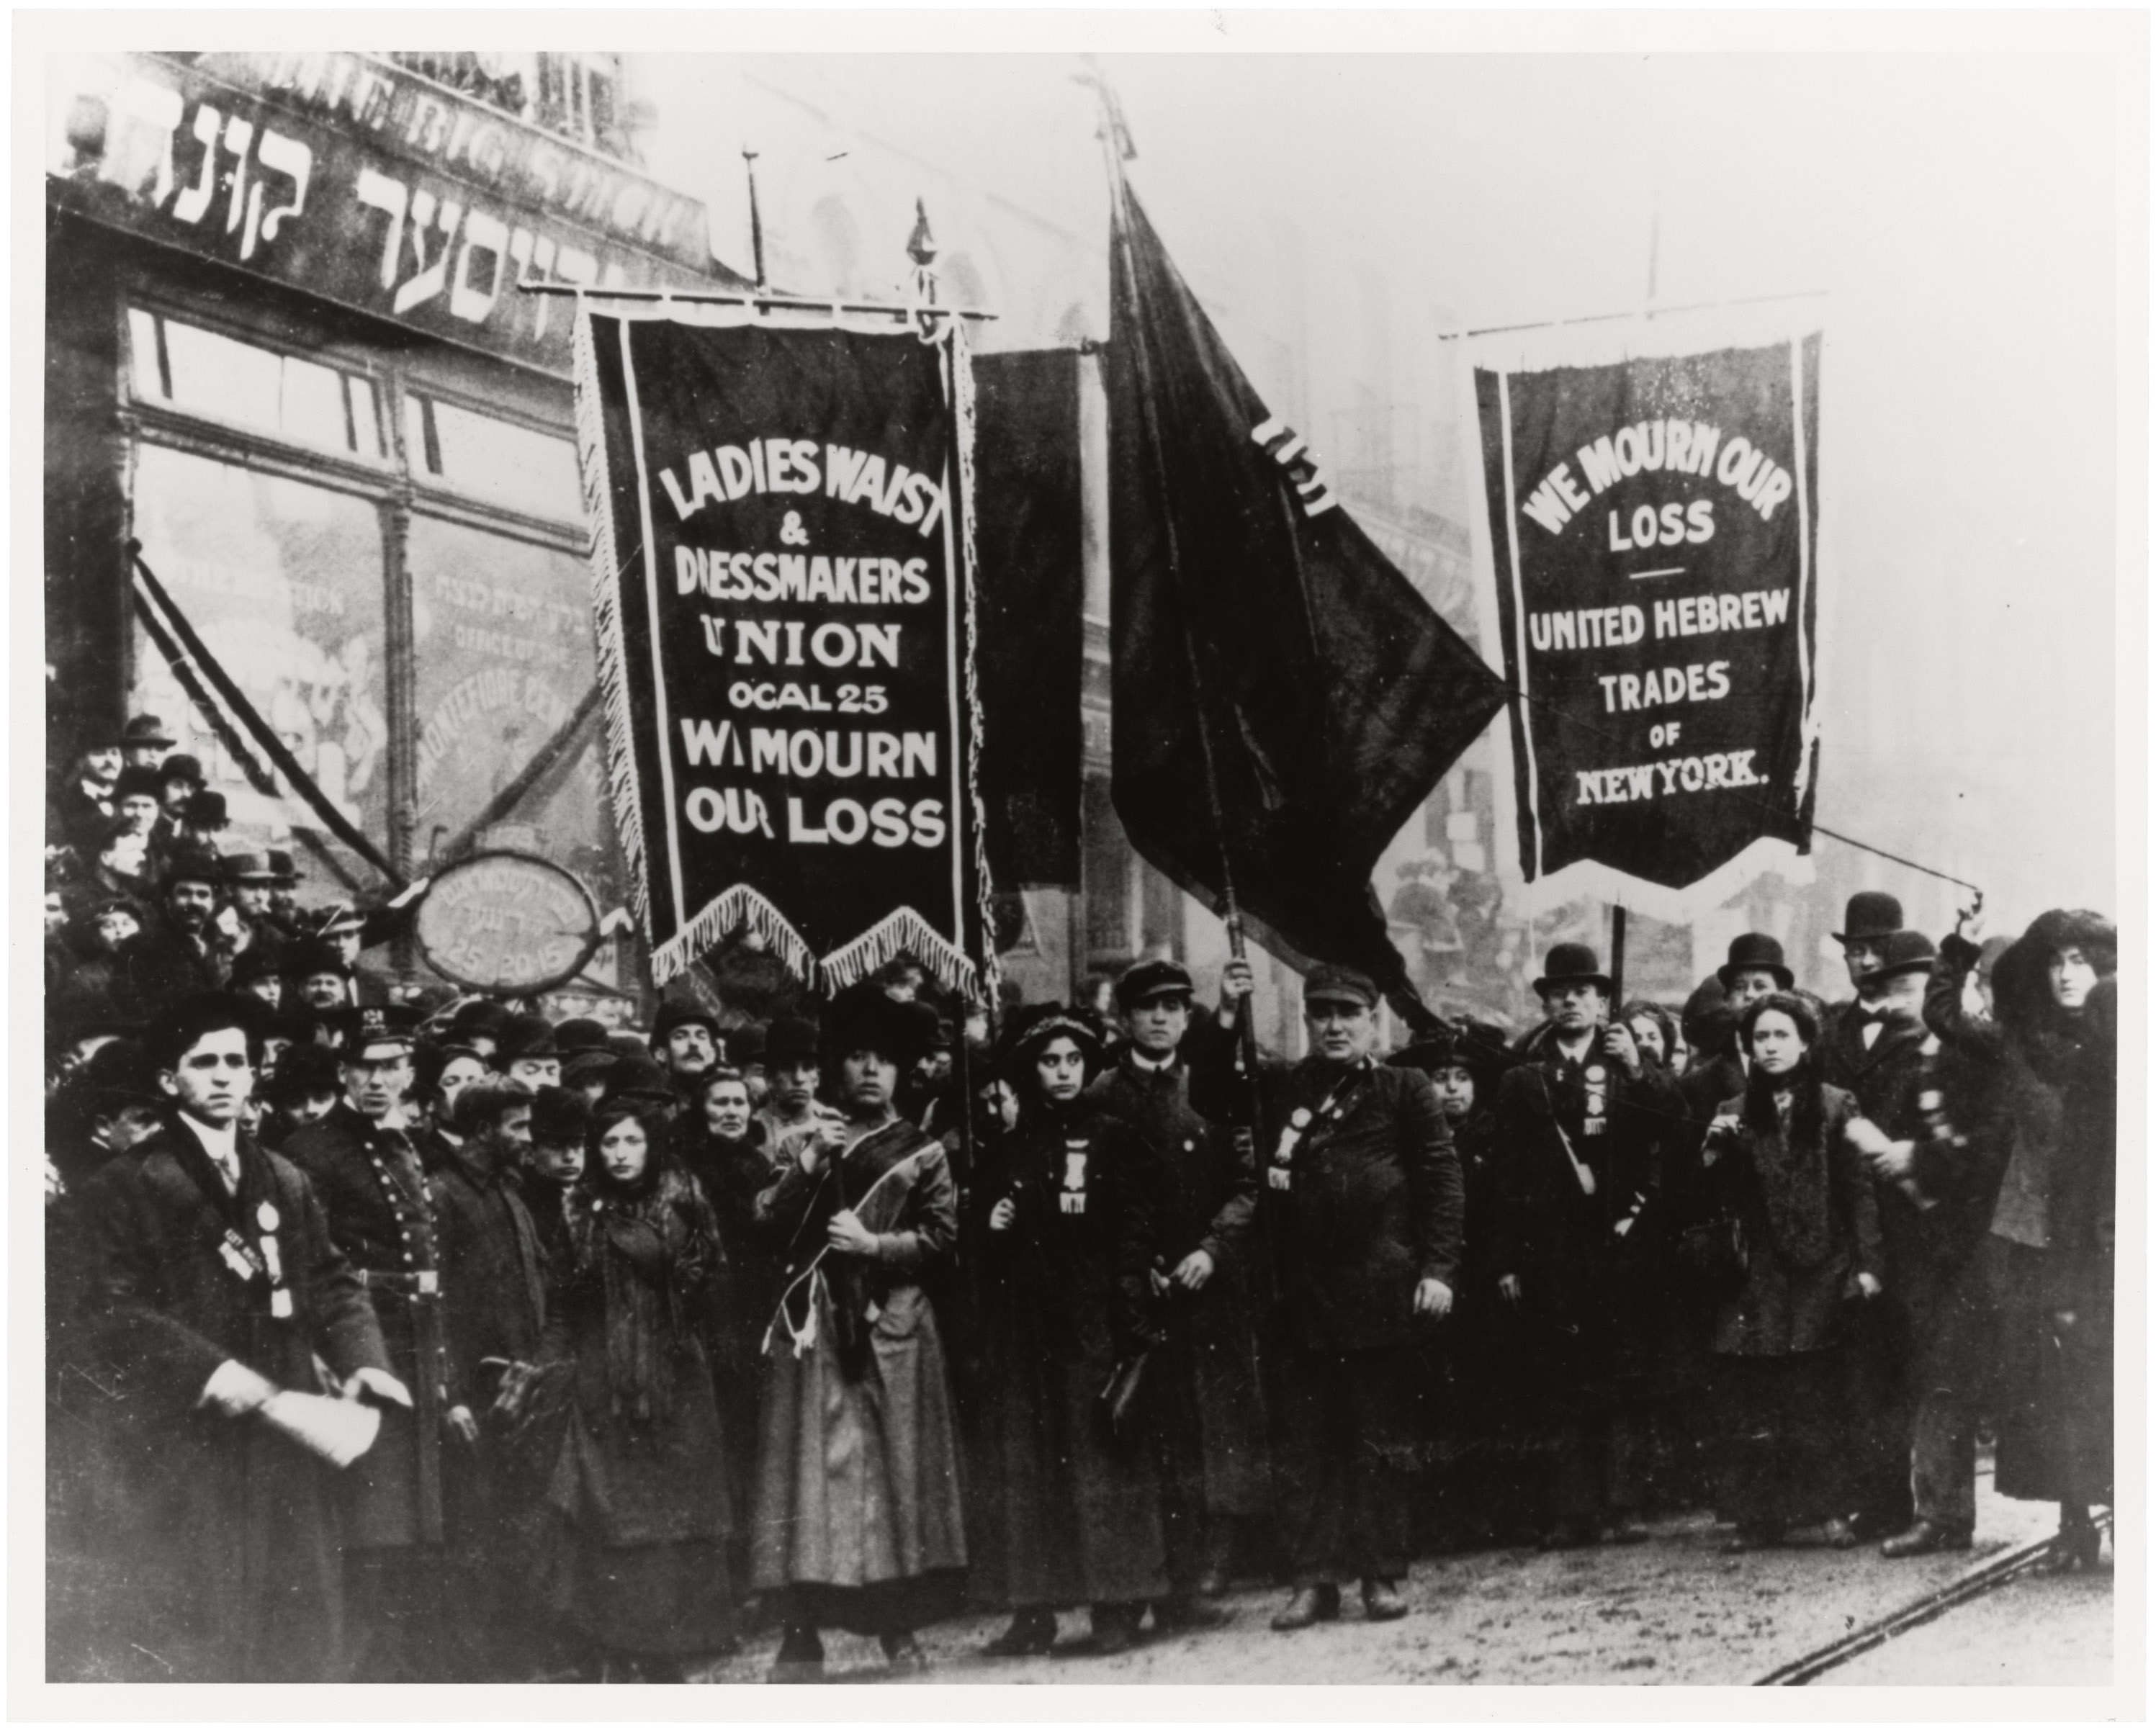 """A black and white photo of a crowd of people standing together with large cloth banners. One banner says"""" Ladies Waist and Dressmakers Union Local 25, We mourn our loss"""" and the other reads """"We mourn our loss, United Hebrew trades of New York""""."""